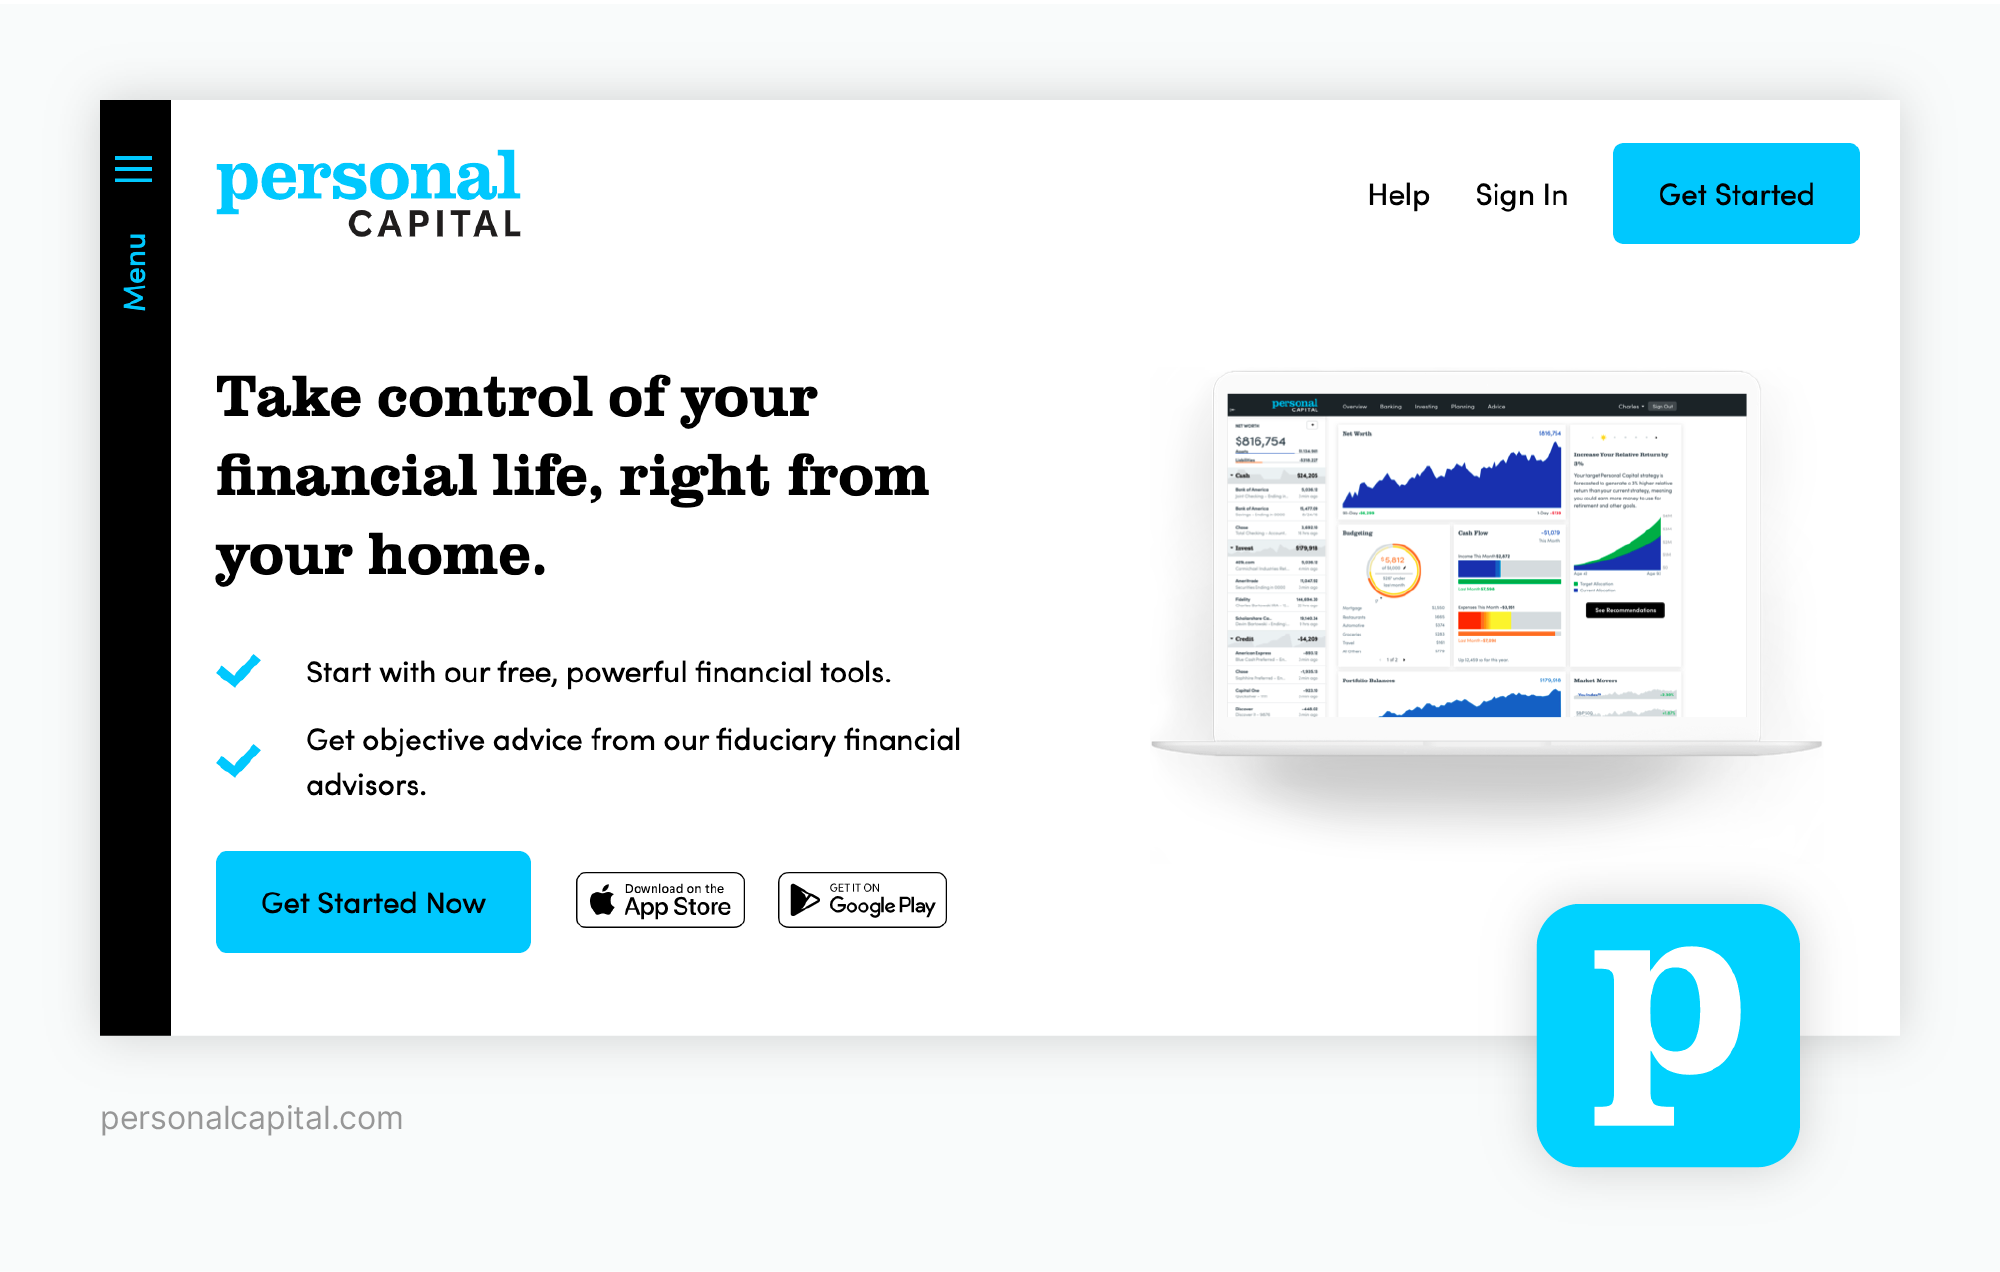 What Is Personal Capital?